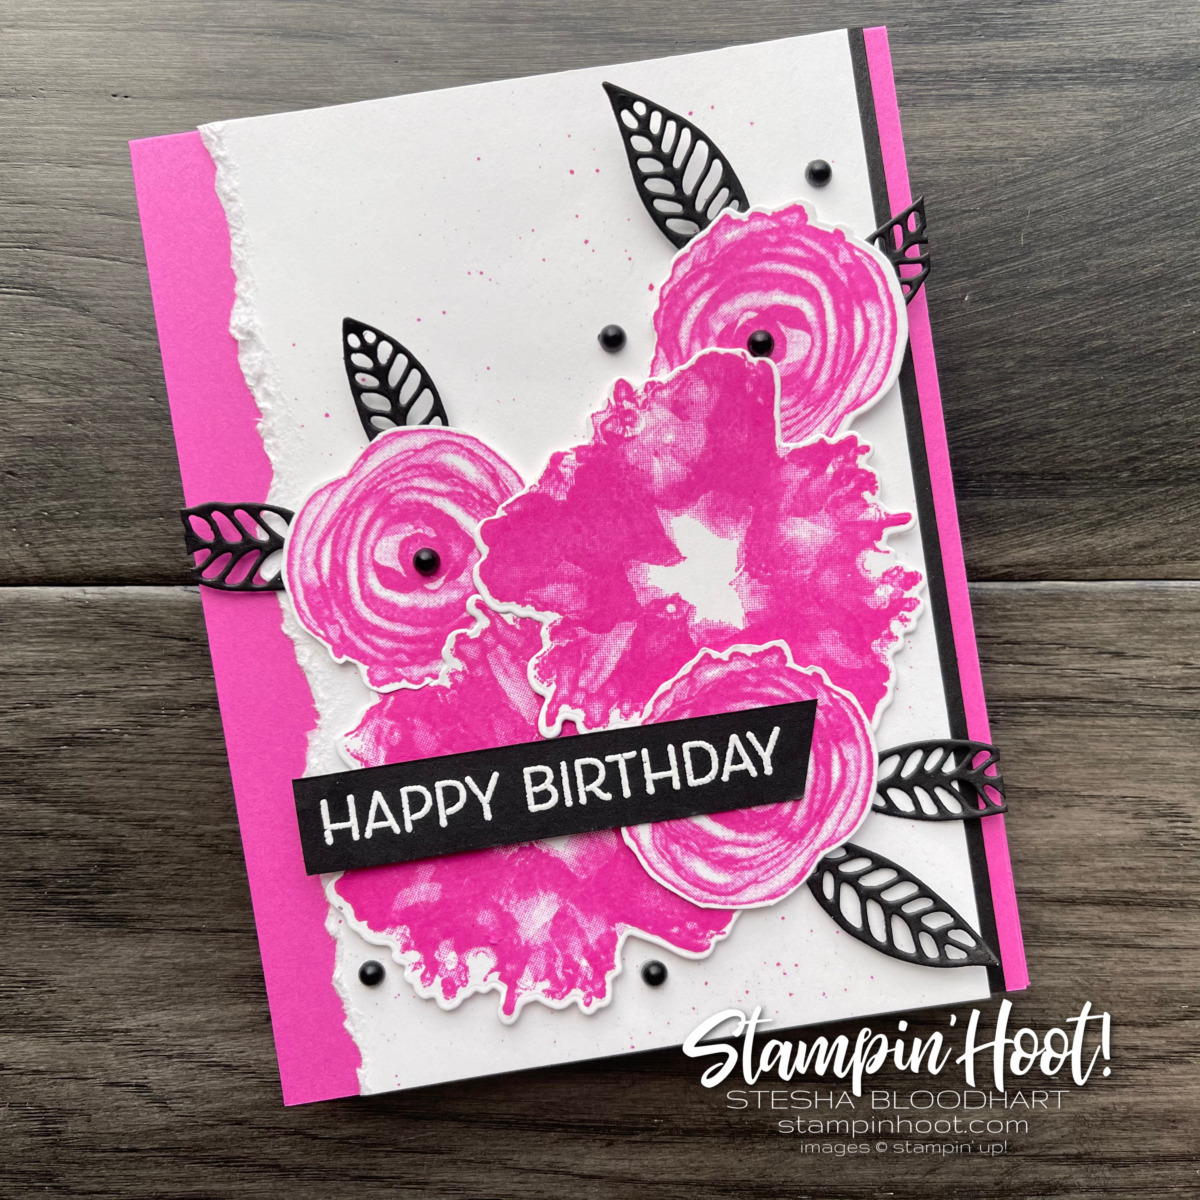 Artistically Inked Bundle by Stampin' Up! Happy Birthday Magenta Madness Card by Stesha Bloodhart, Stampin' Hoot!